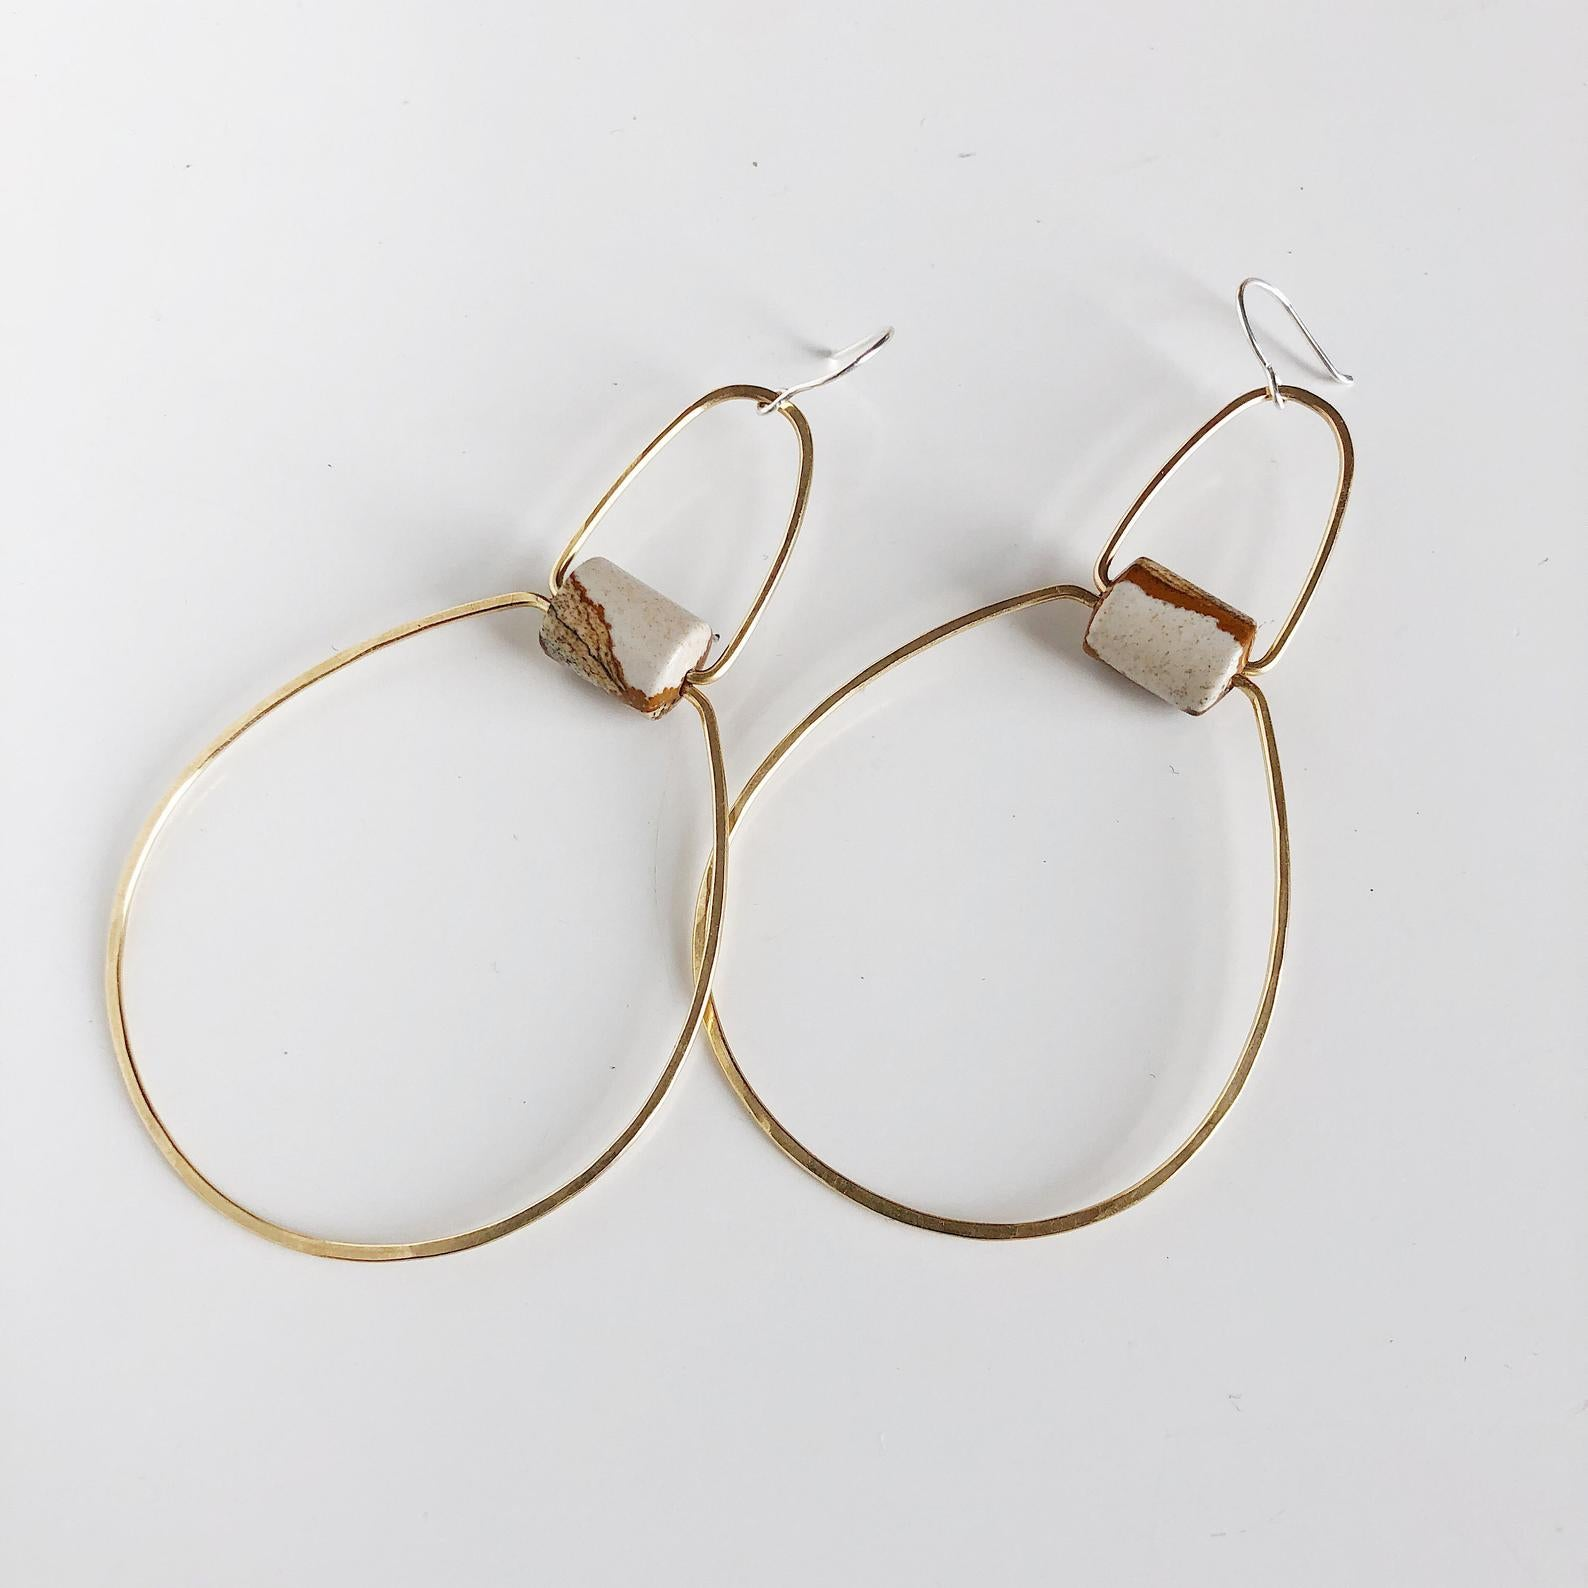 Souvenir Handmade Unique Hand Hammered Hoop Earrings